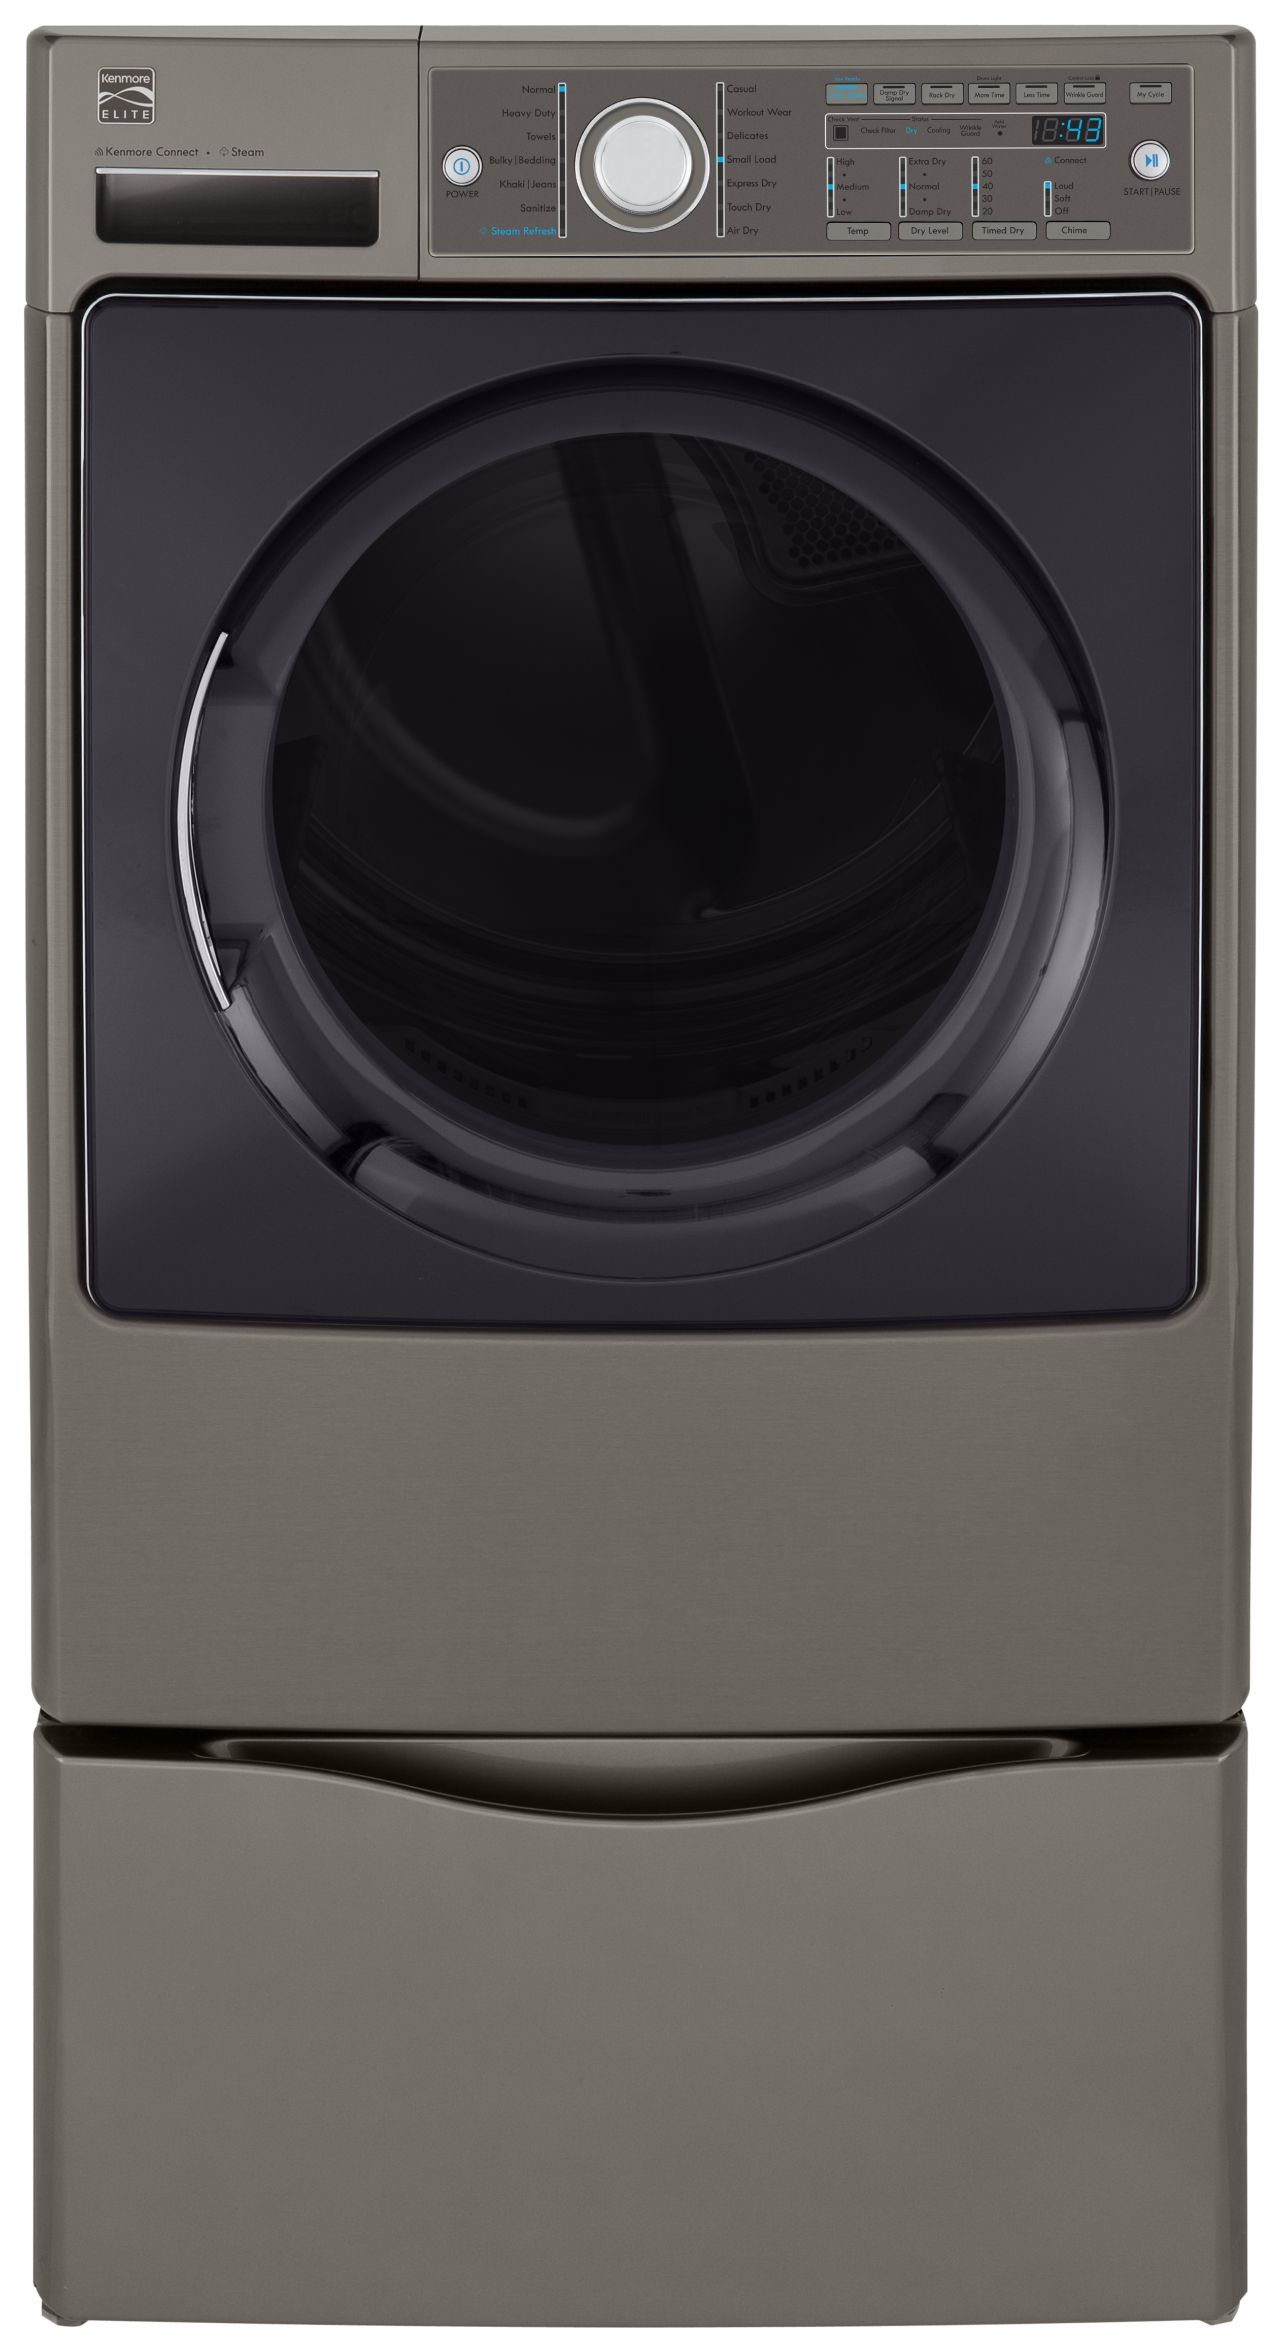 Kenmore Elite 7.4 cu. ft. Gas Steam Dryer - Metallic Silver